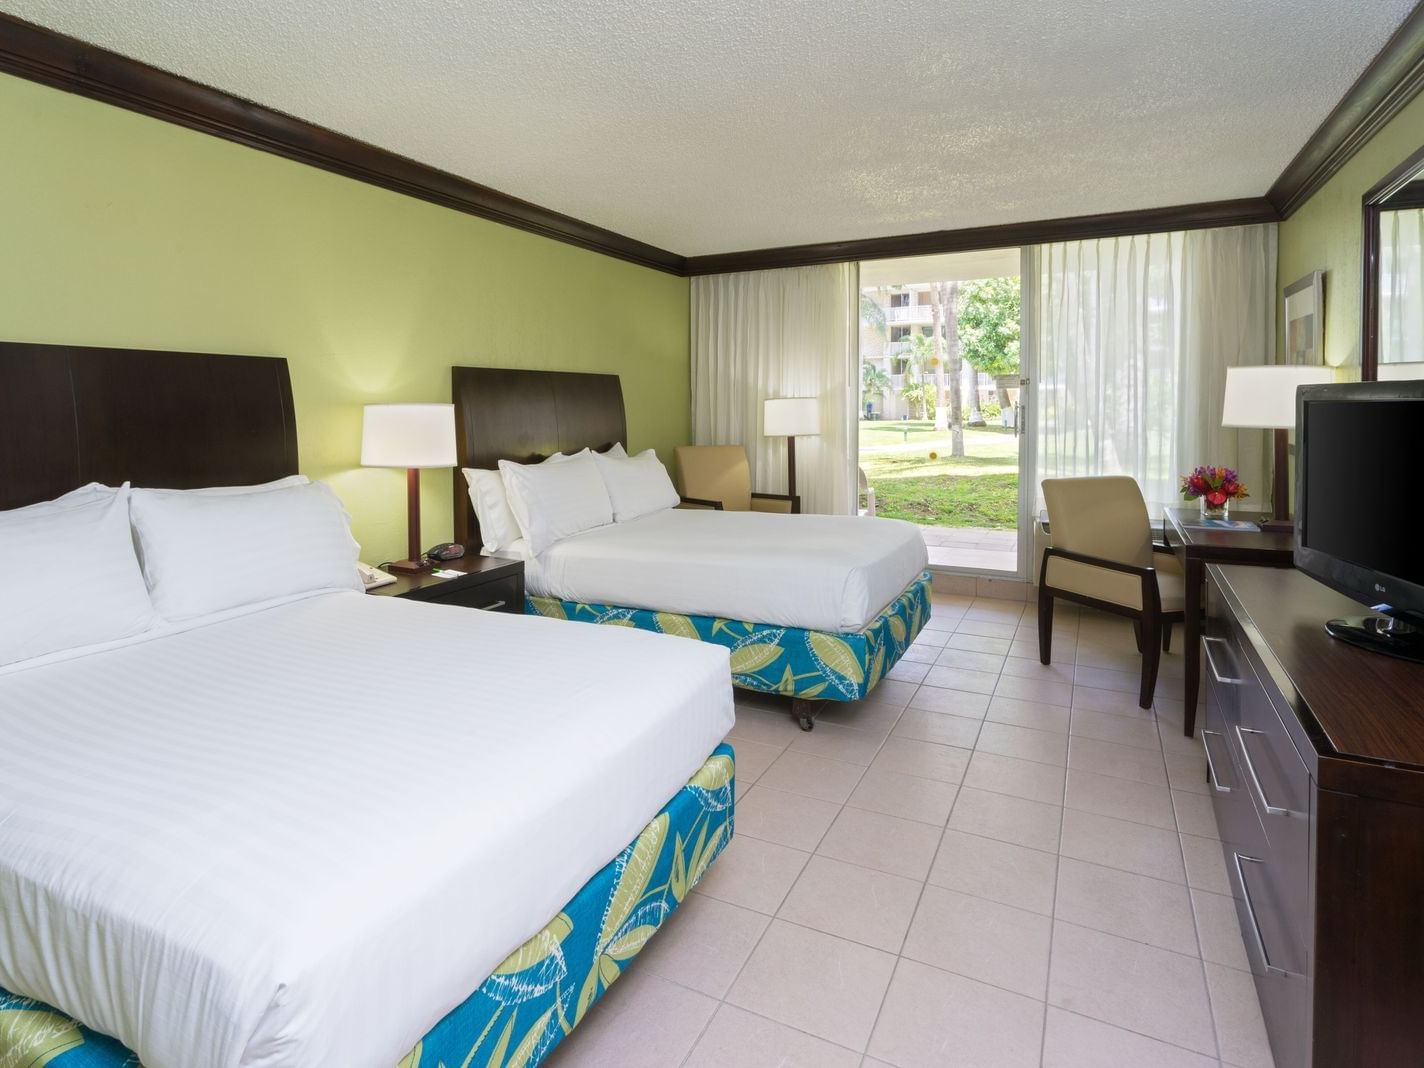 Double beds in the standard room at Holiday Inn Montego Bay